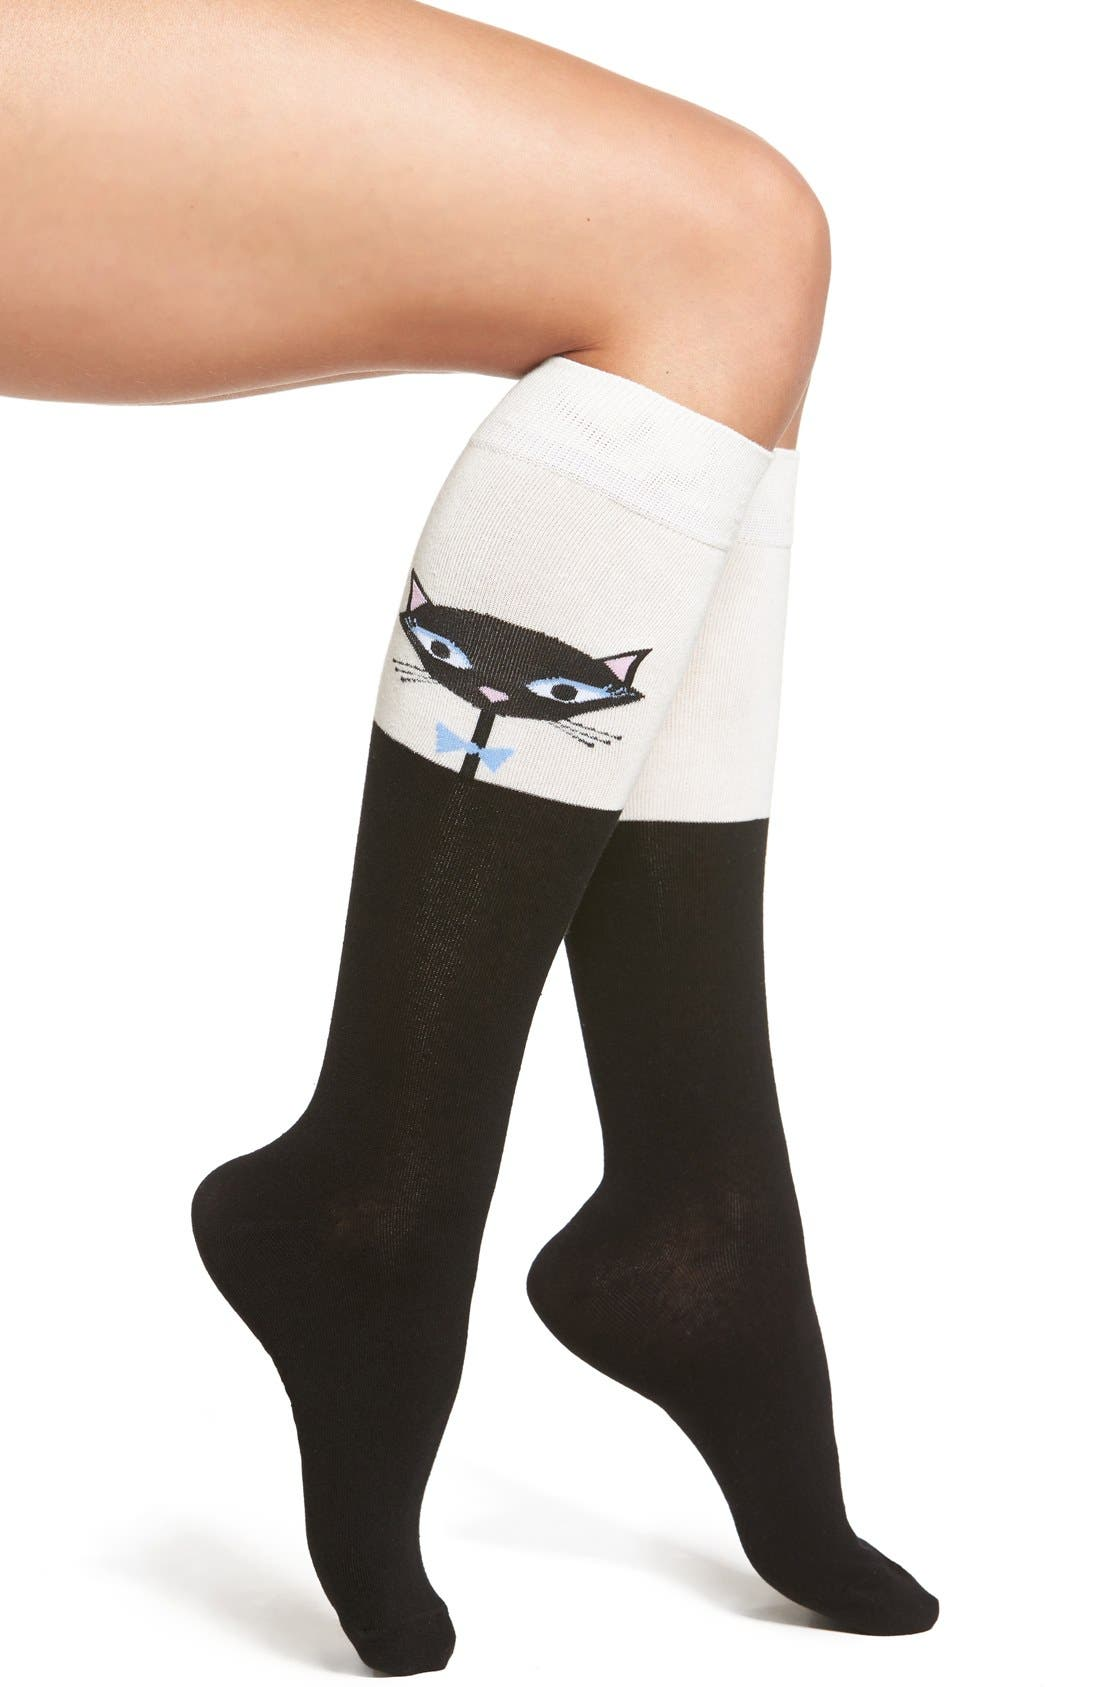 Alternate Image 1 Selected - kate spade new york cool cat knee high socks